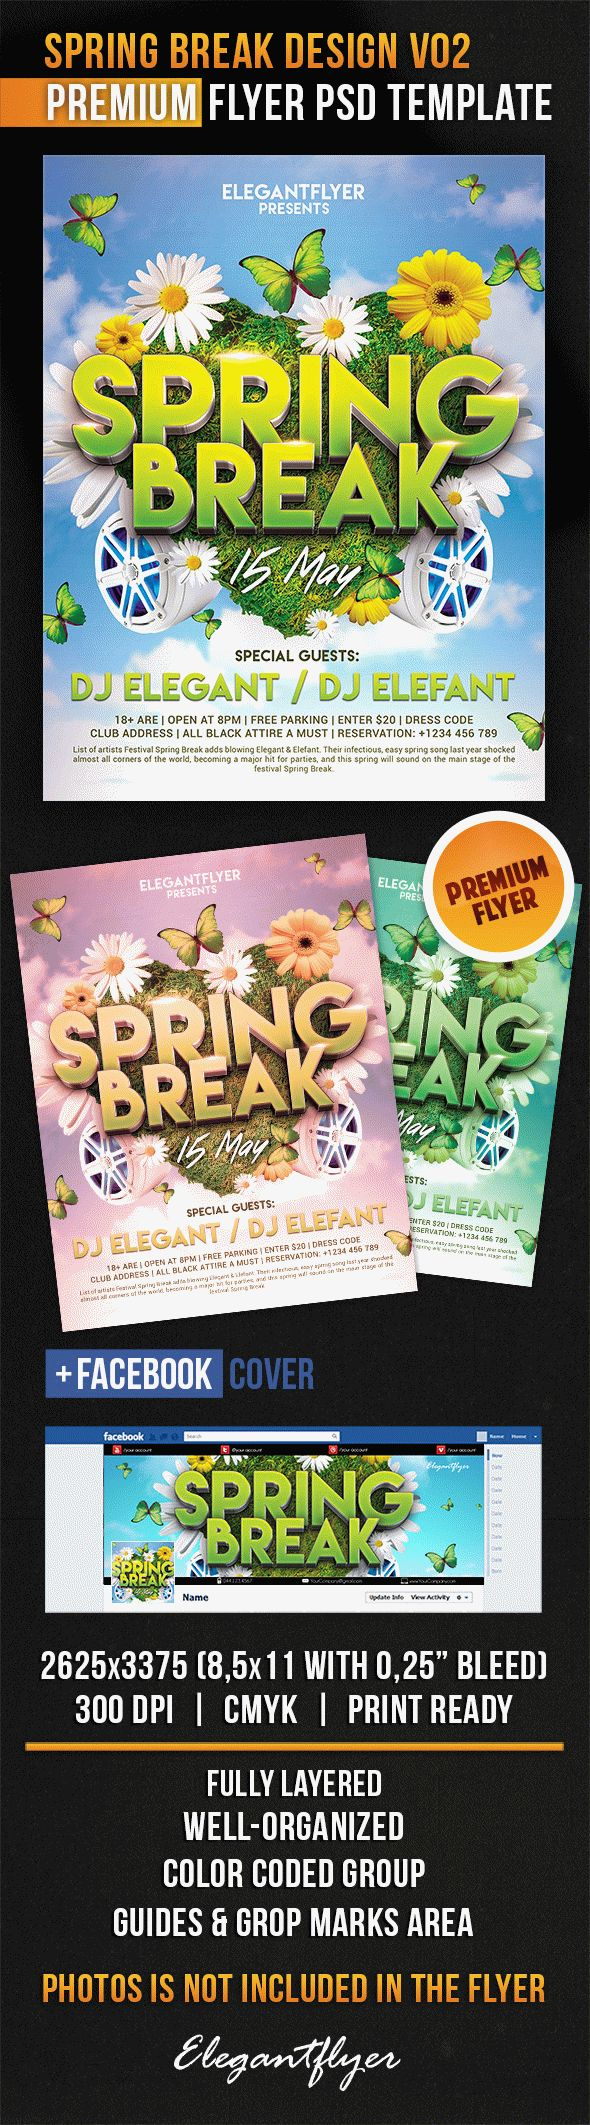 Spring Break Design V02 – Flyer PSD Template